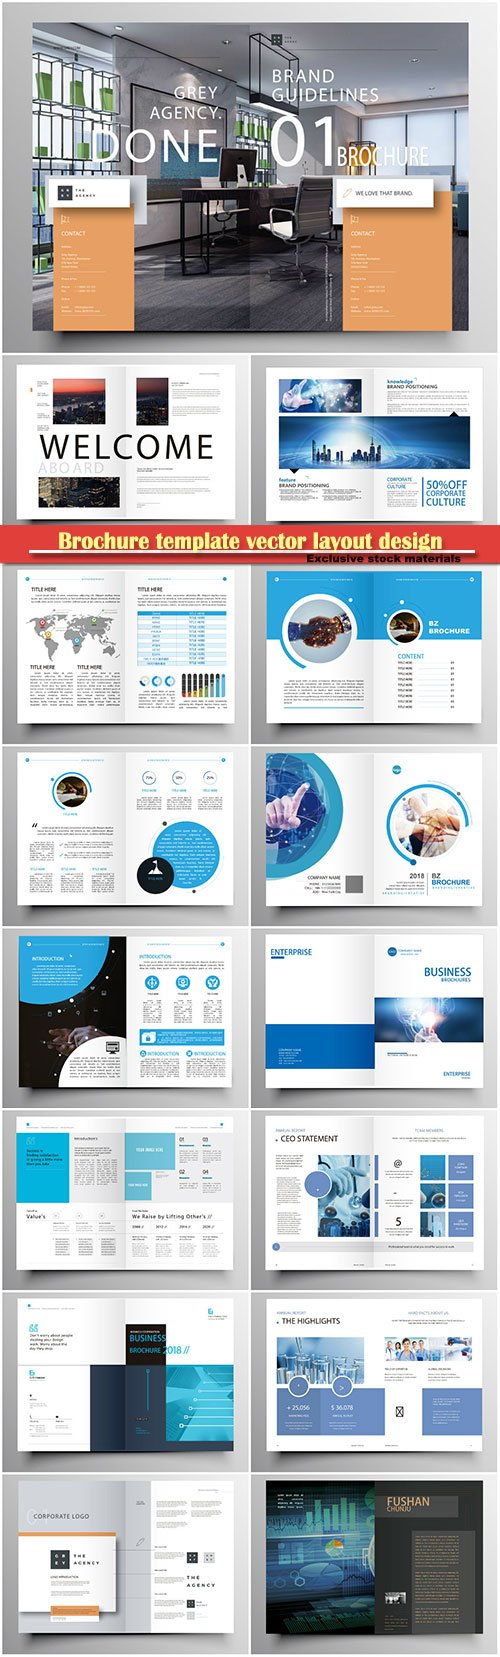 Brochure template vector layout design, corporate business annual report, magazine, flyer mockup # 131